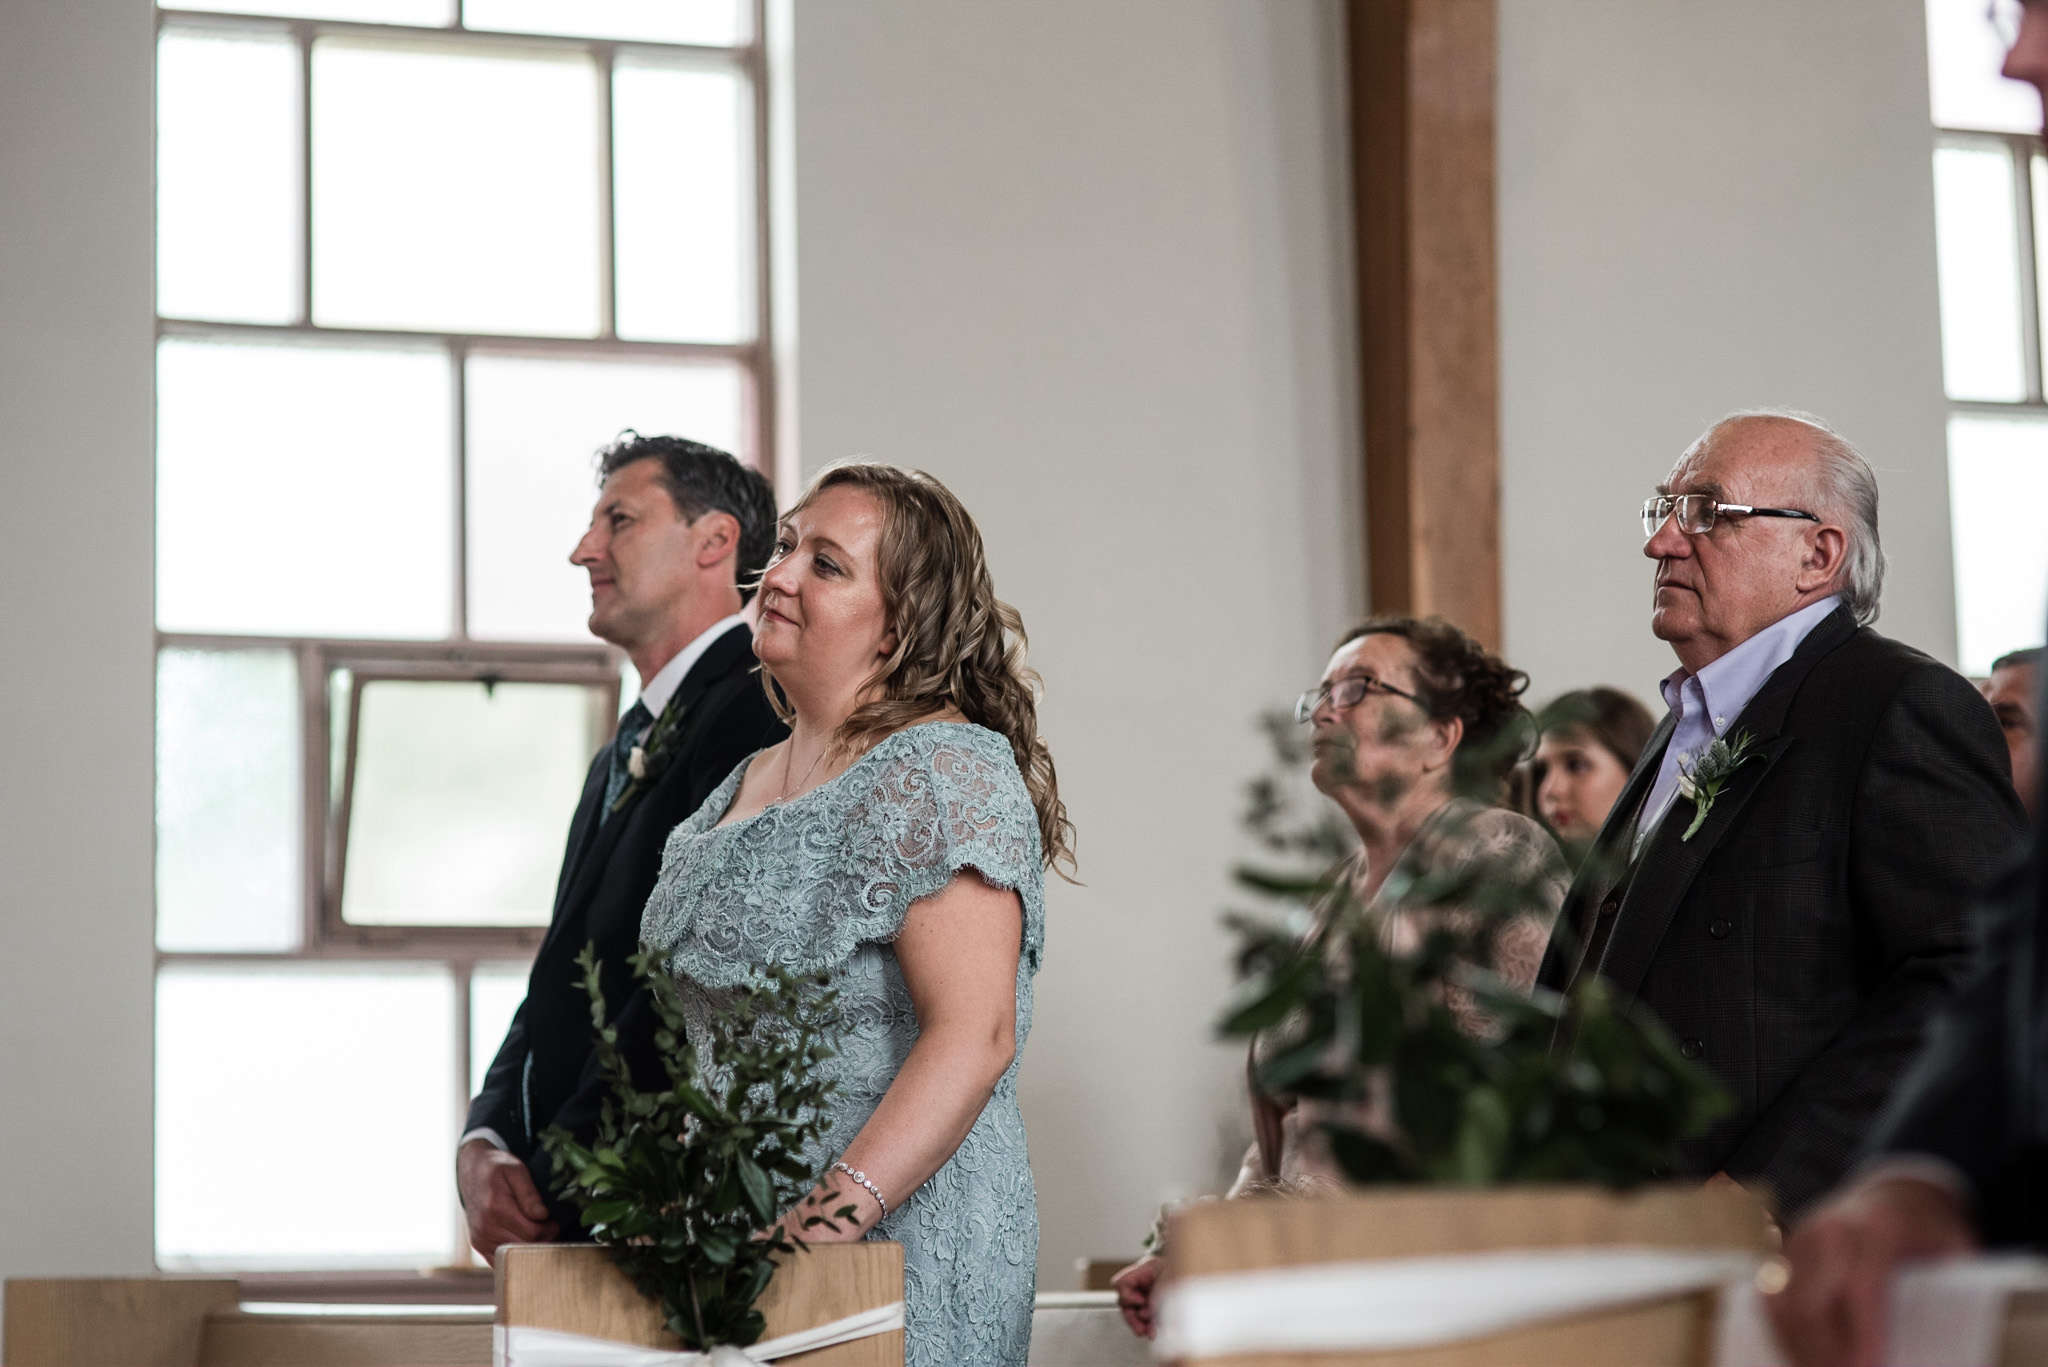 184-church-wedding-toronto-parents-candids.jpg